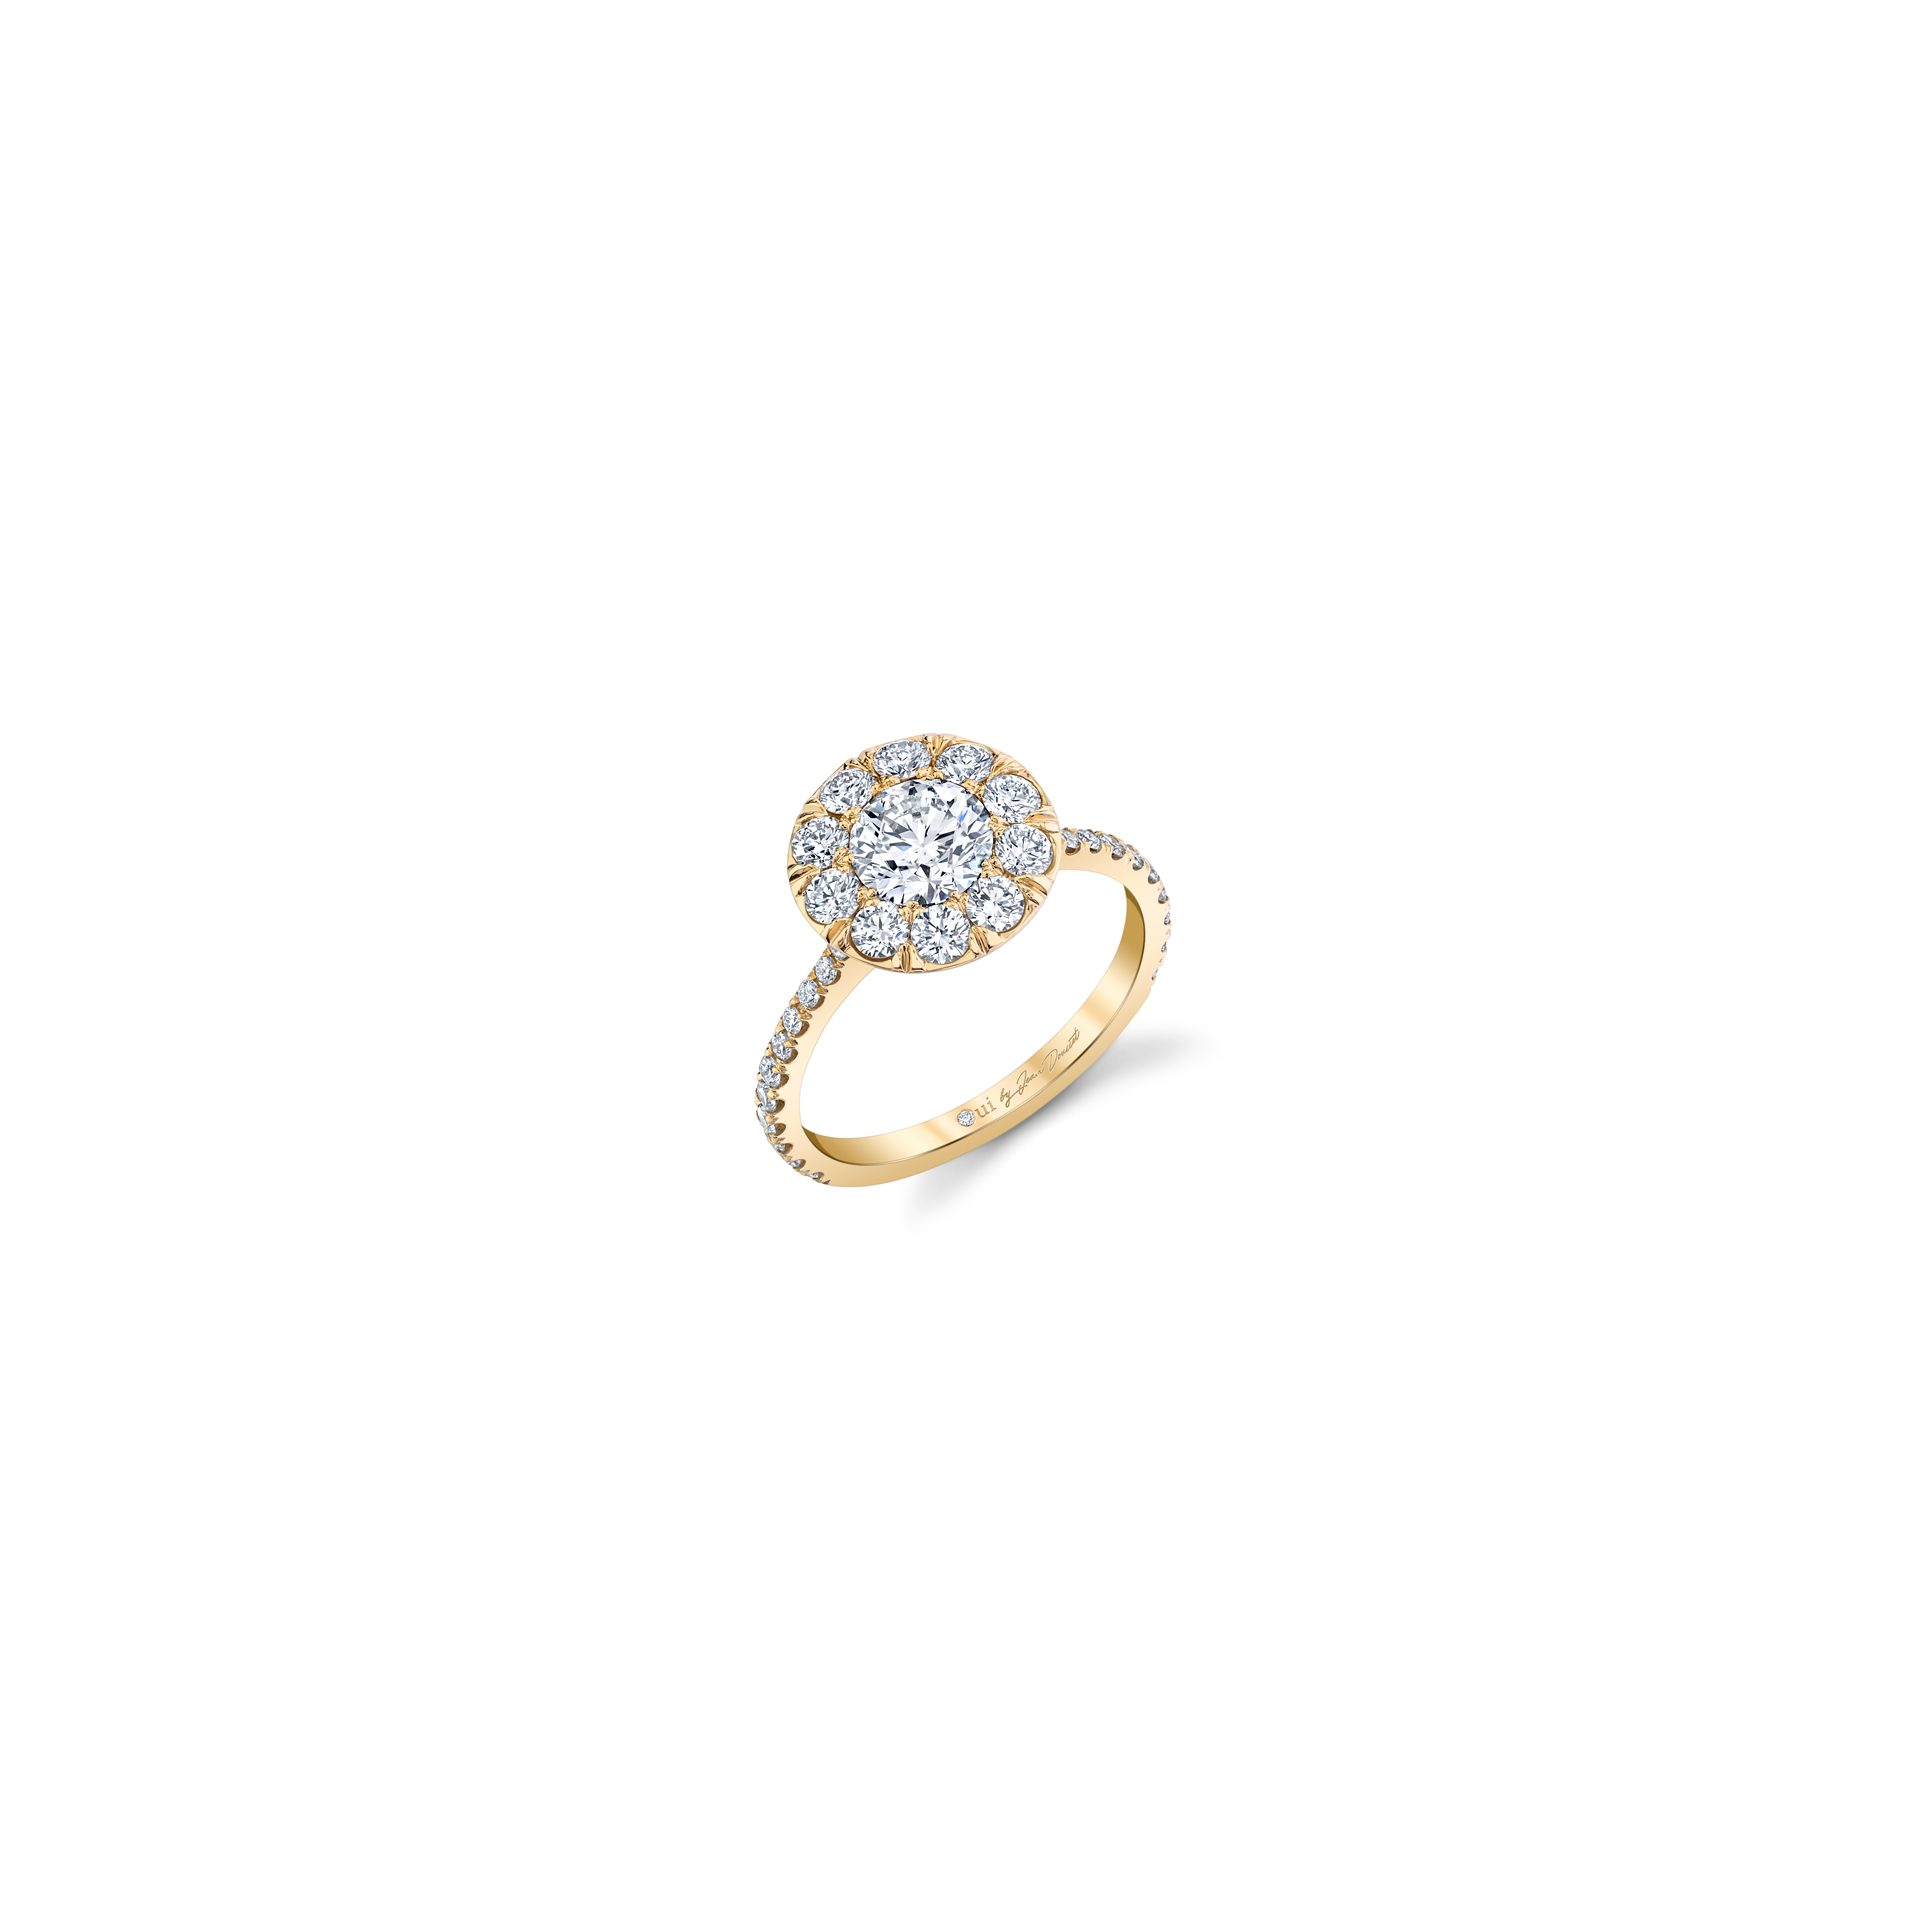 Eloise Round Brilliant Seamless Solitaire™ Engagement Ring with diamond pavé in 18k Yellow Gold Front View by Oui by Jean Dousset